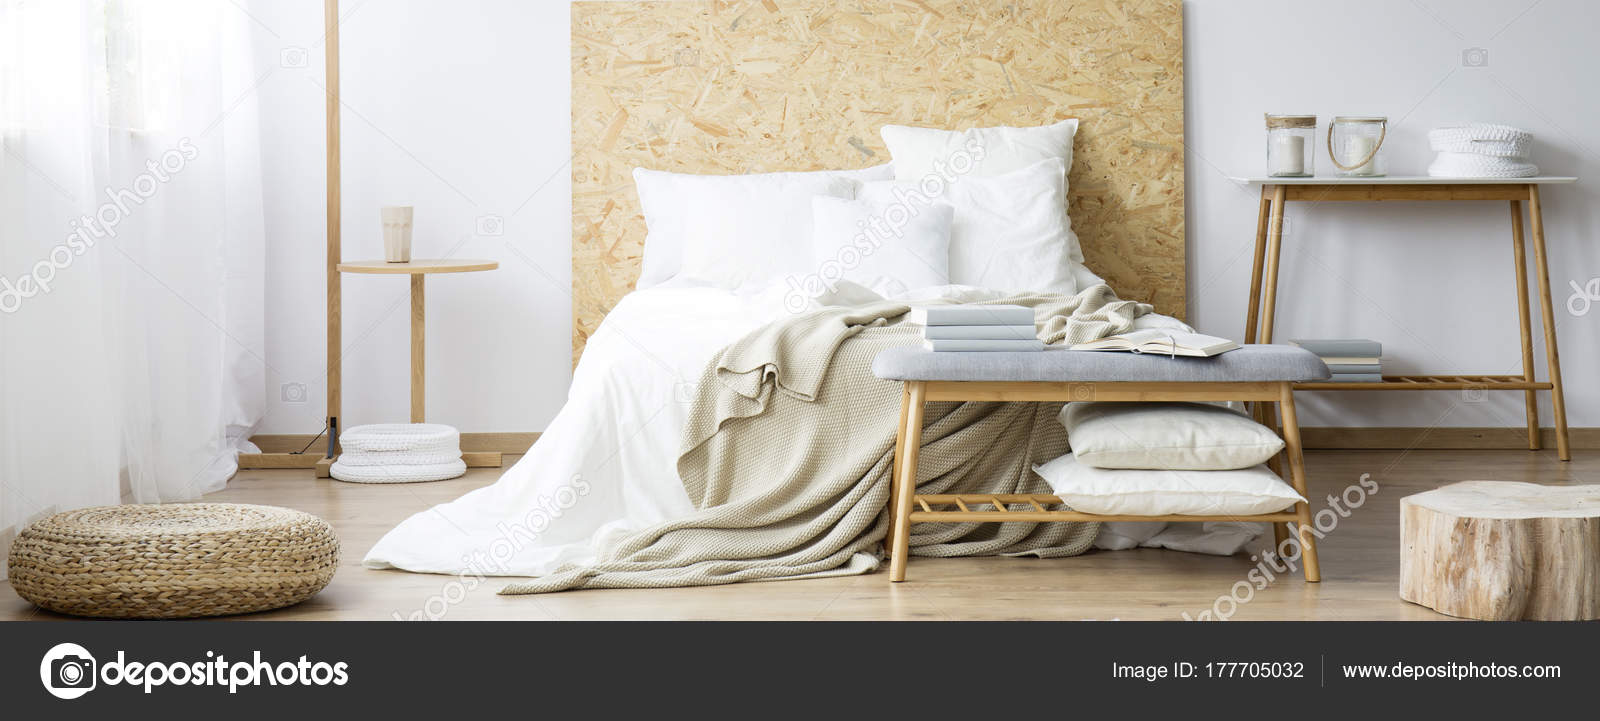 Pouf in camera da letto calda naturale — Foto Stock © photographee ...